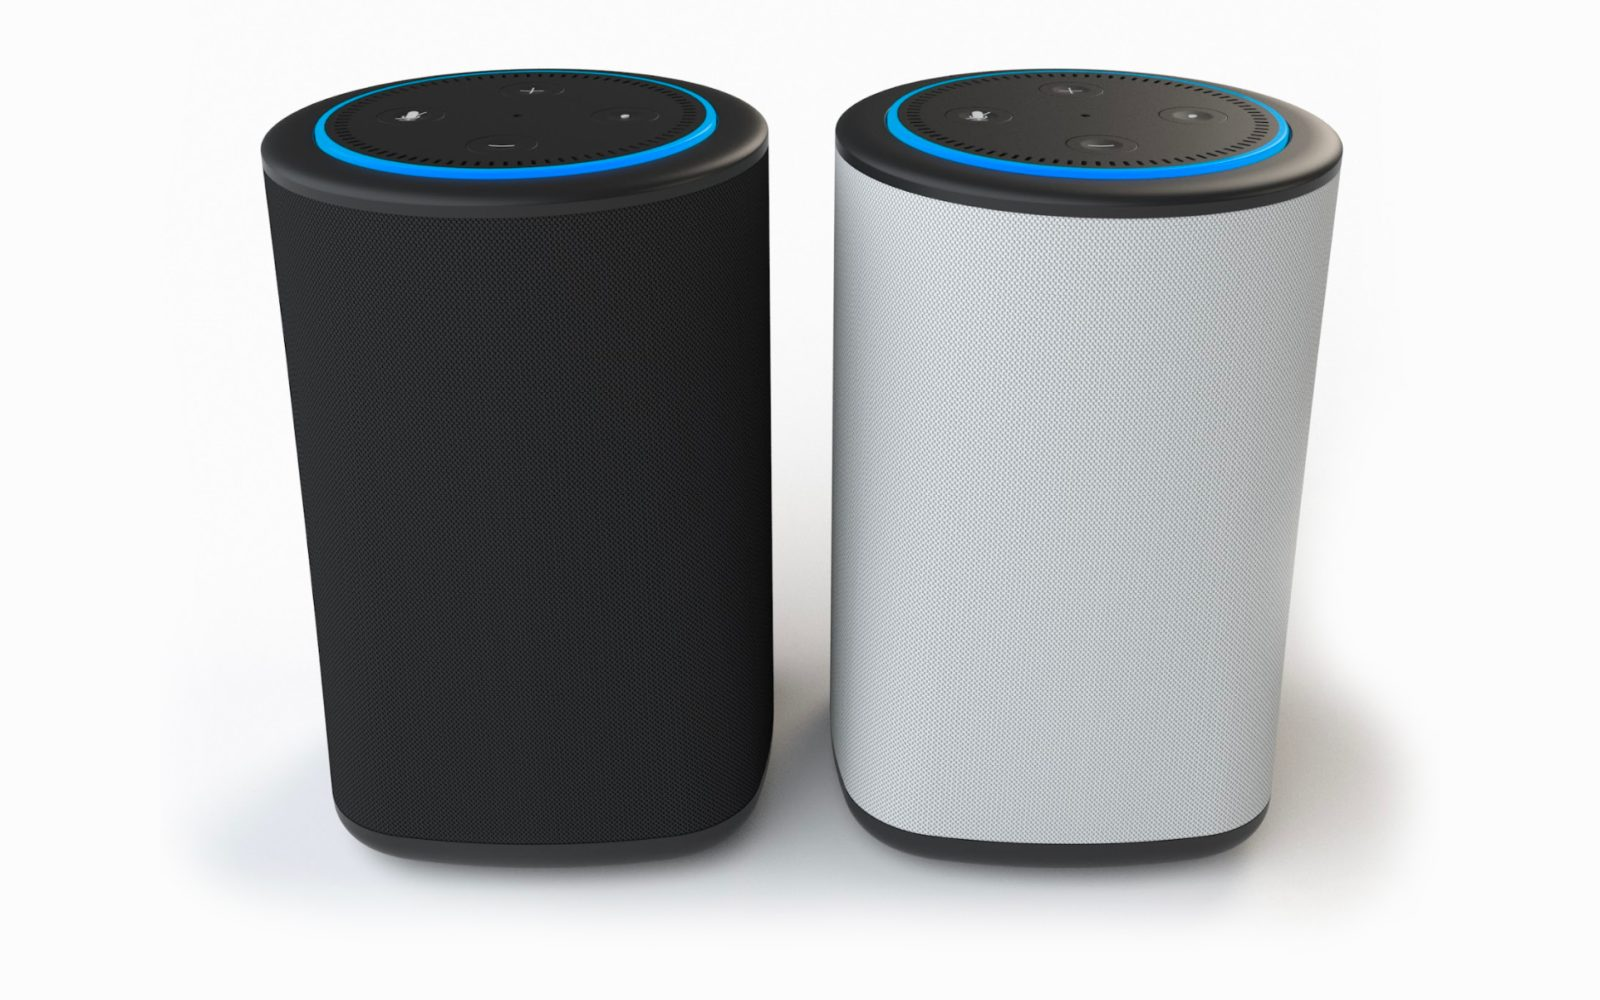 84c237b17fe9a5 VAUX makes Echo Dot portable, adds battery and external speaker ...